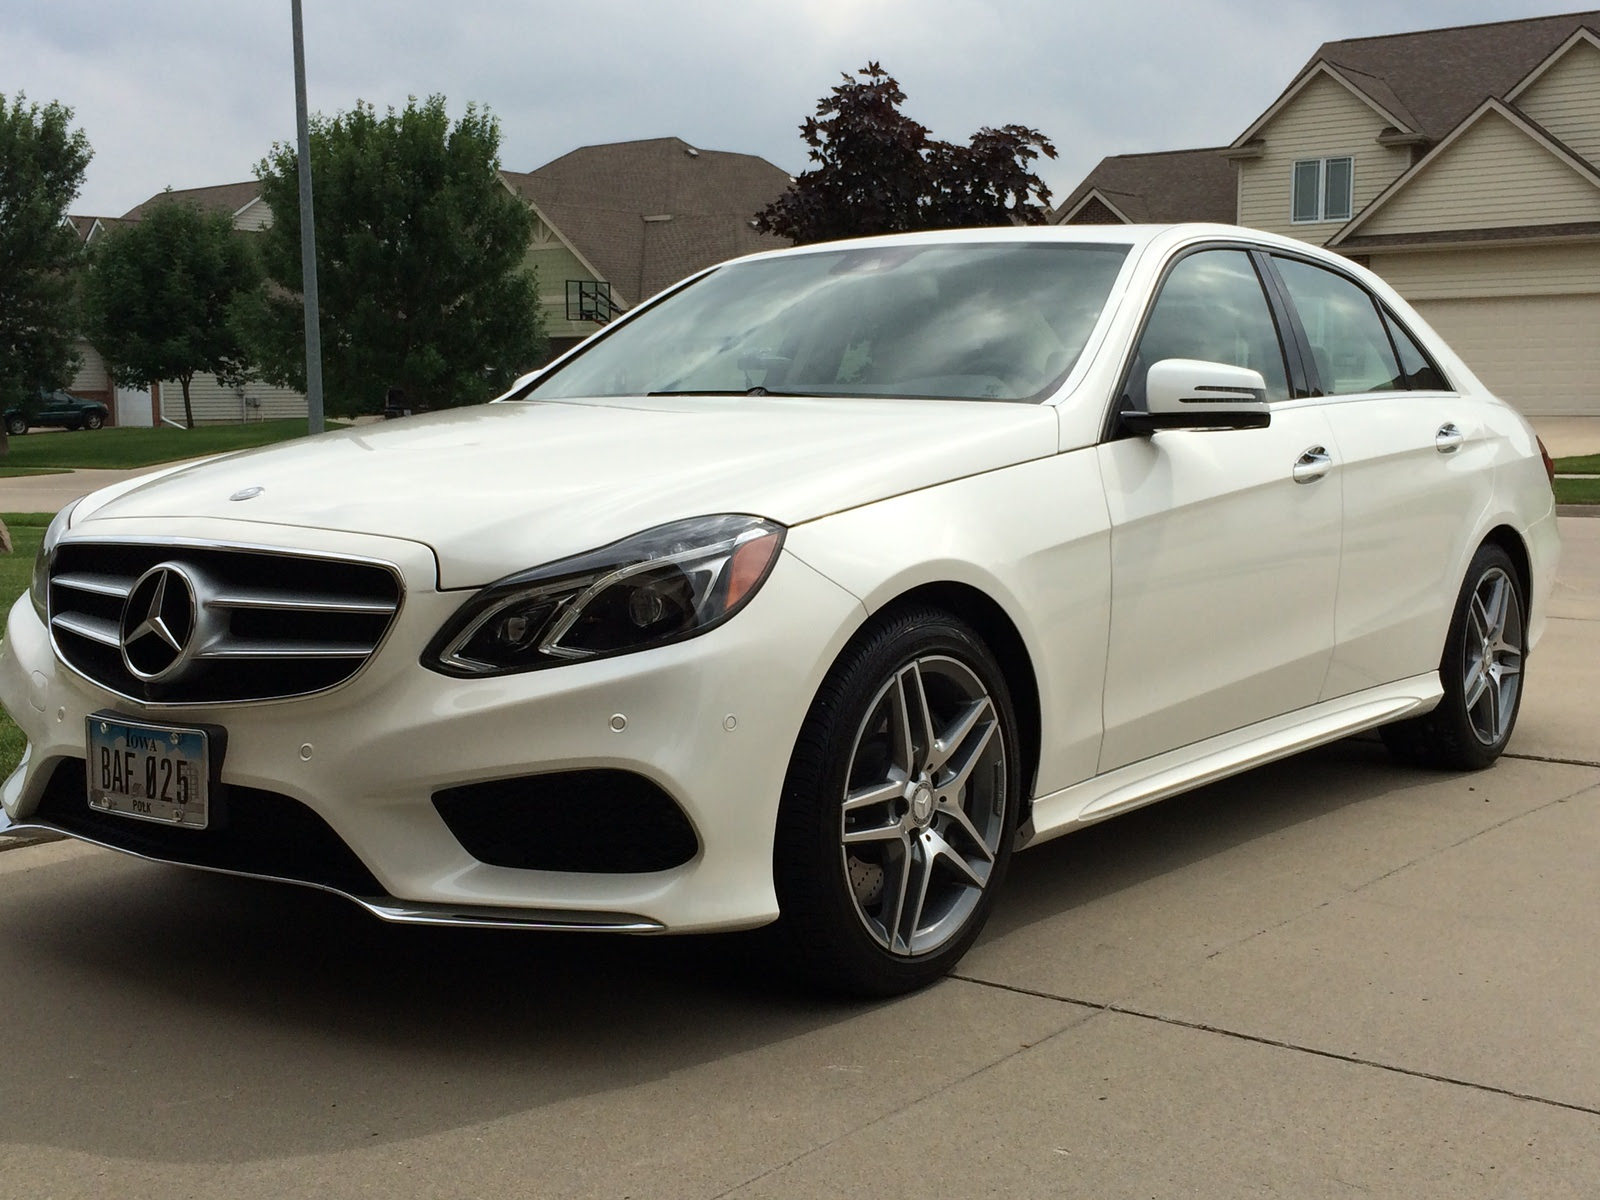 New 2015 / 2016 Mercedes-Benz E-Class For Sale - CarGurus